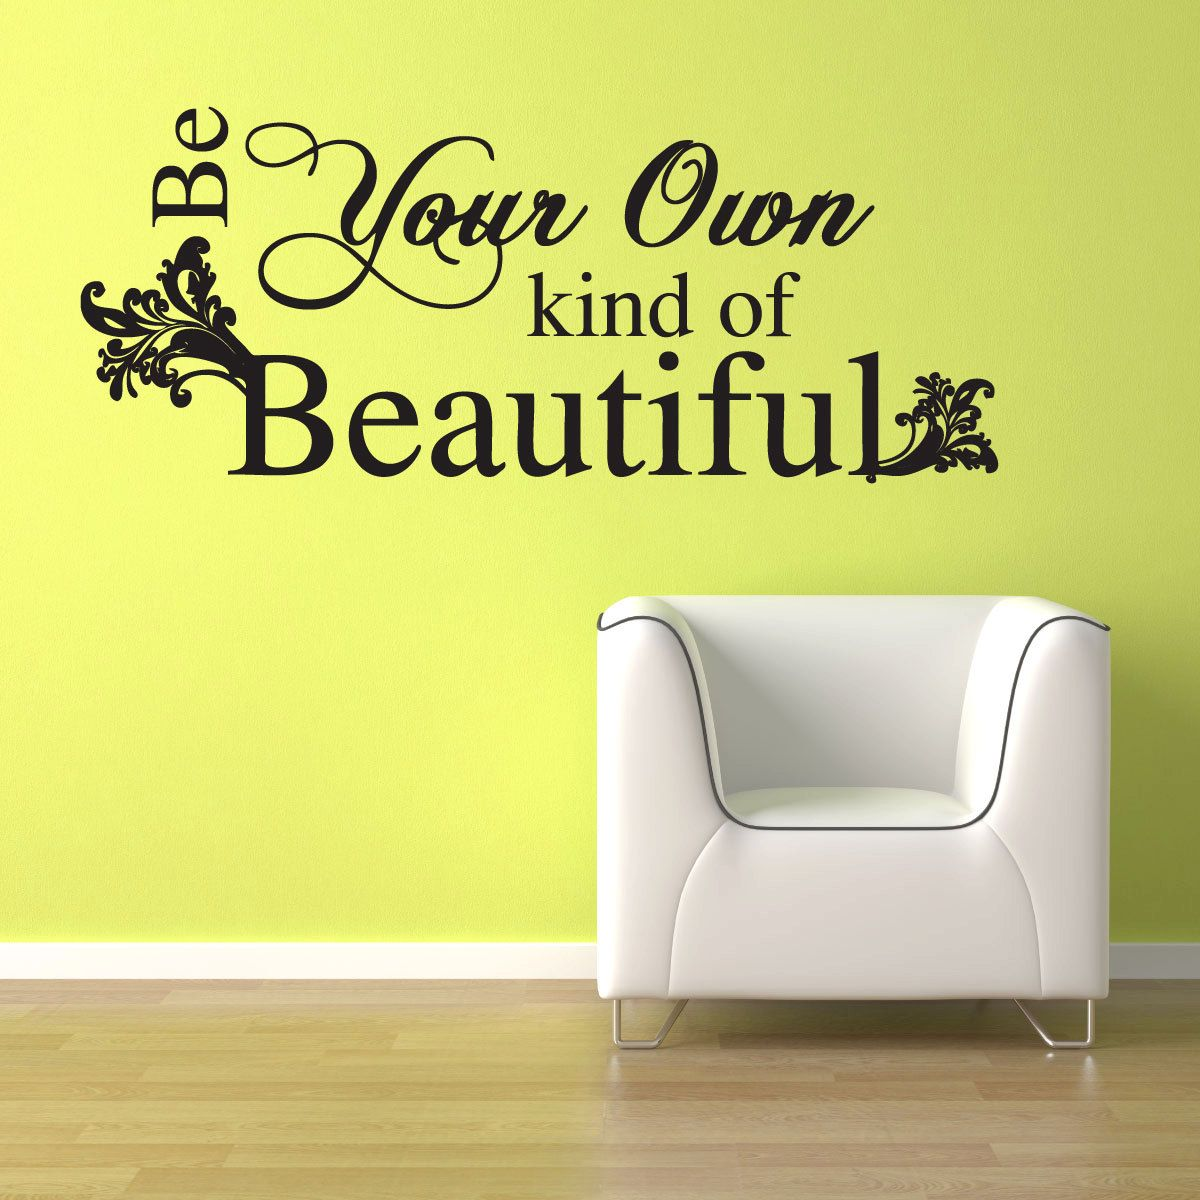 Wall Decals Quotes: Be Your Own Kind Of Beautiful Wall Decal